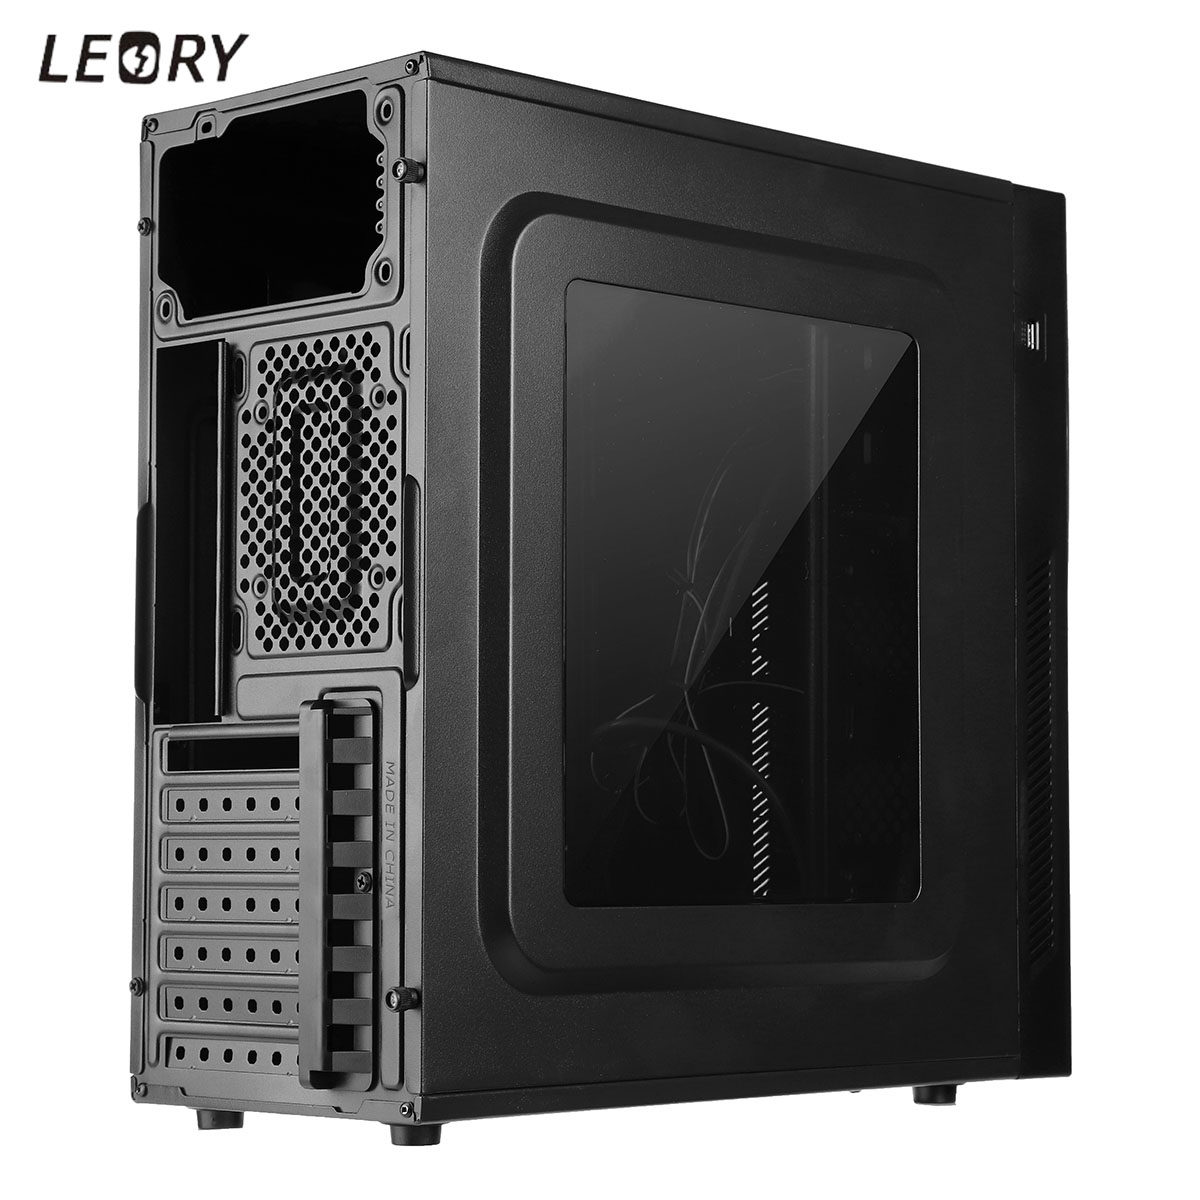 Acrylic Game Computer Case Enclosure RGB Exchanged Micro ATX PC Case Tower Gamer Gaming USB 3.0+USB 2.0 Support ATX For Desktop александра копецкая иванова кот в мешке часть 9